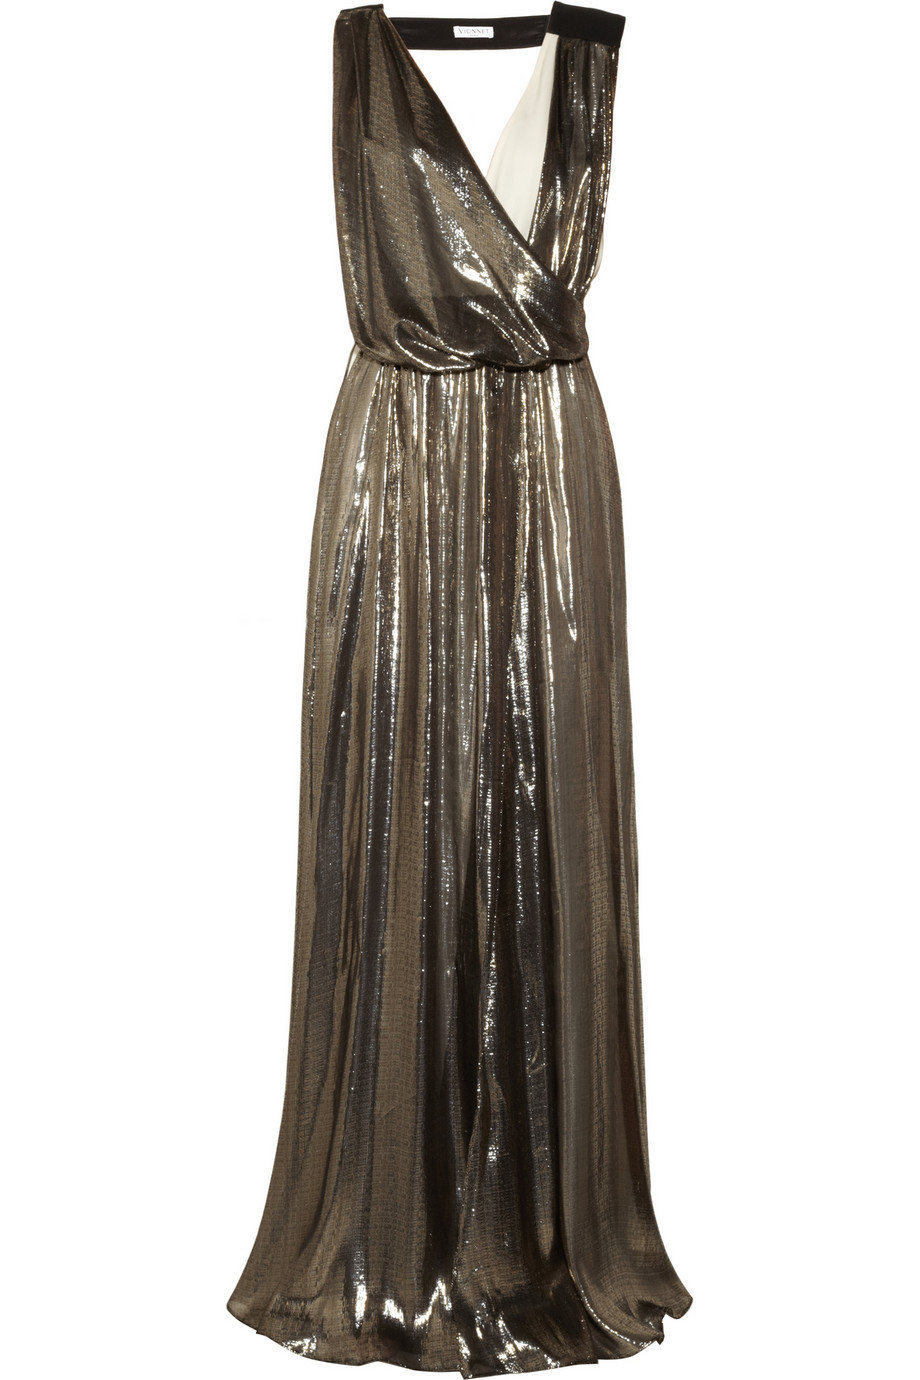 Lyst - Vionnet Metallic Silk blend and Cady Gown in Metallic